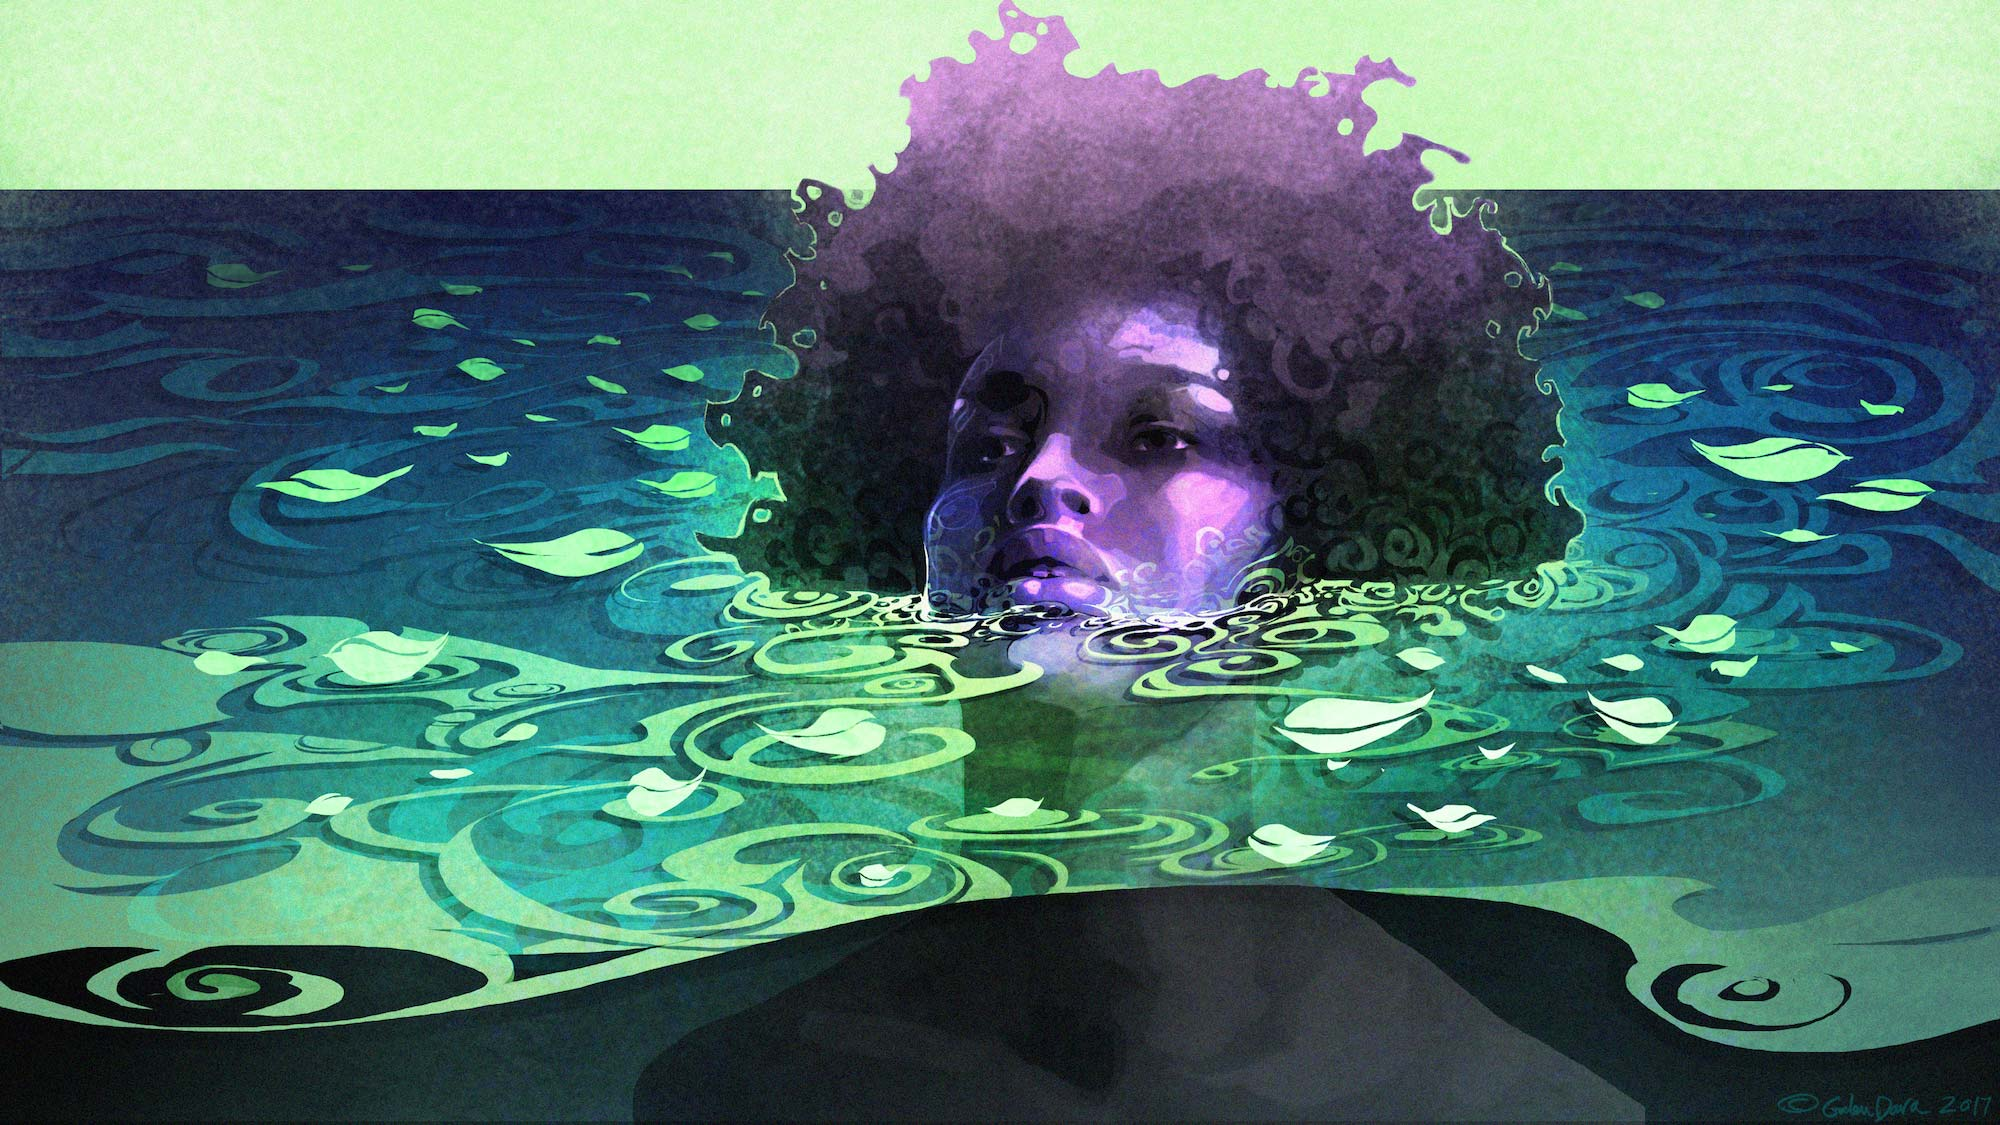 A young person with an afro is sitting in water up to their chin.